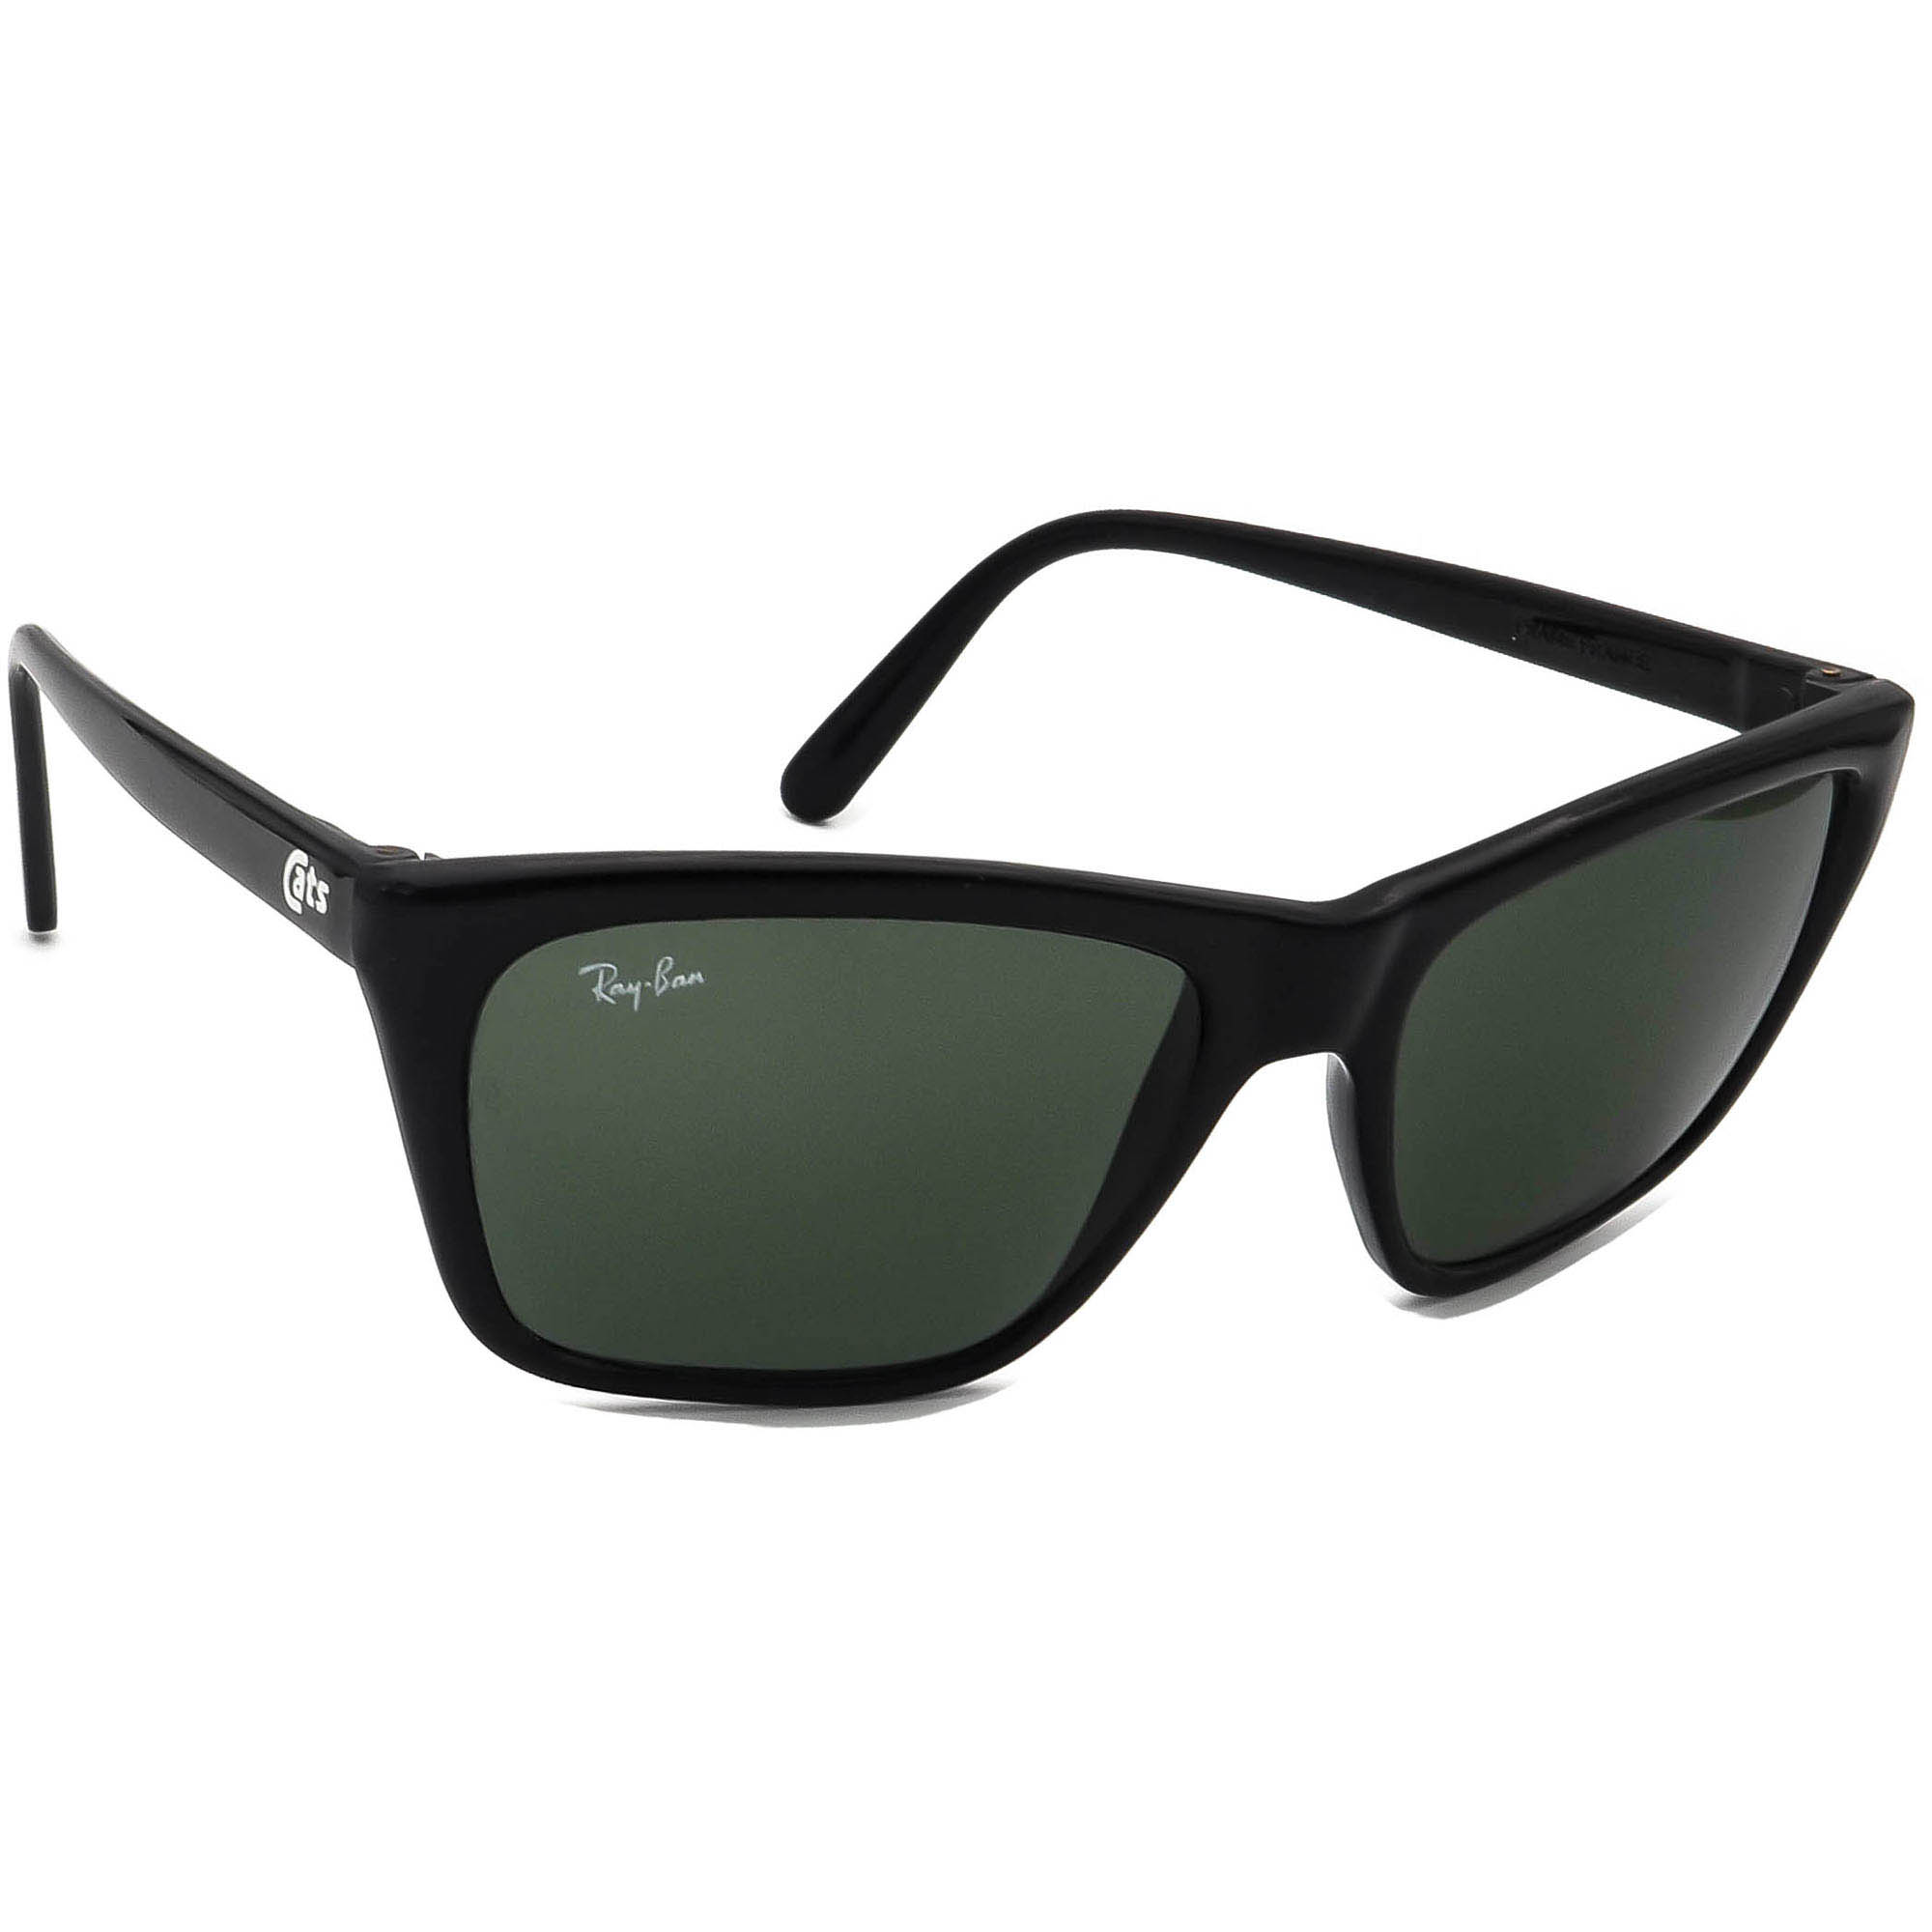 Ray Ban (B&L) Cats Vintage Sunglasses